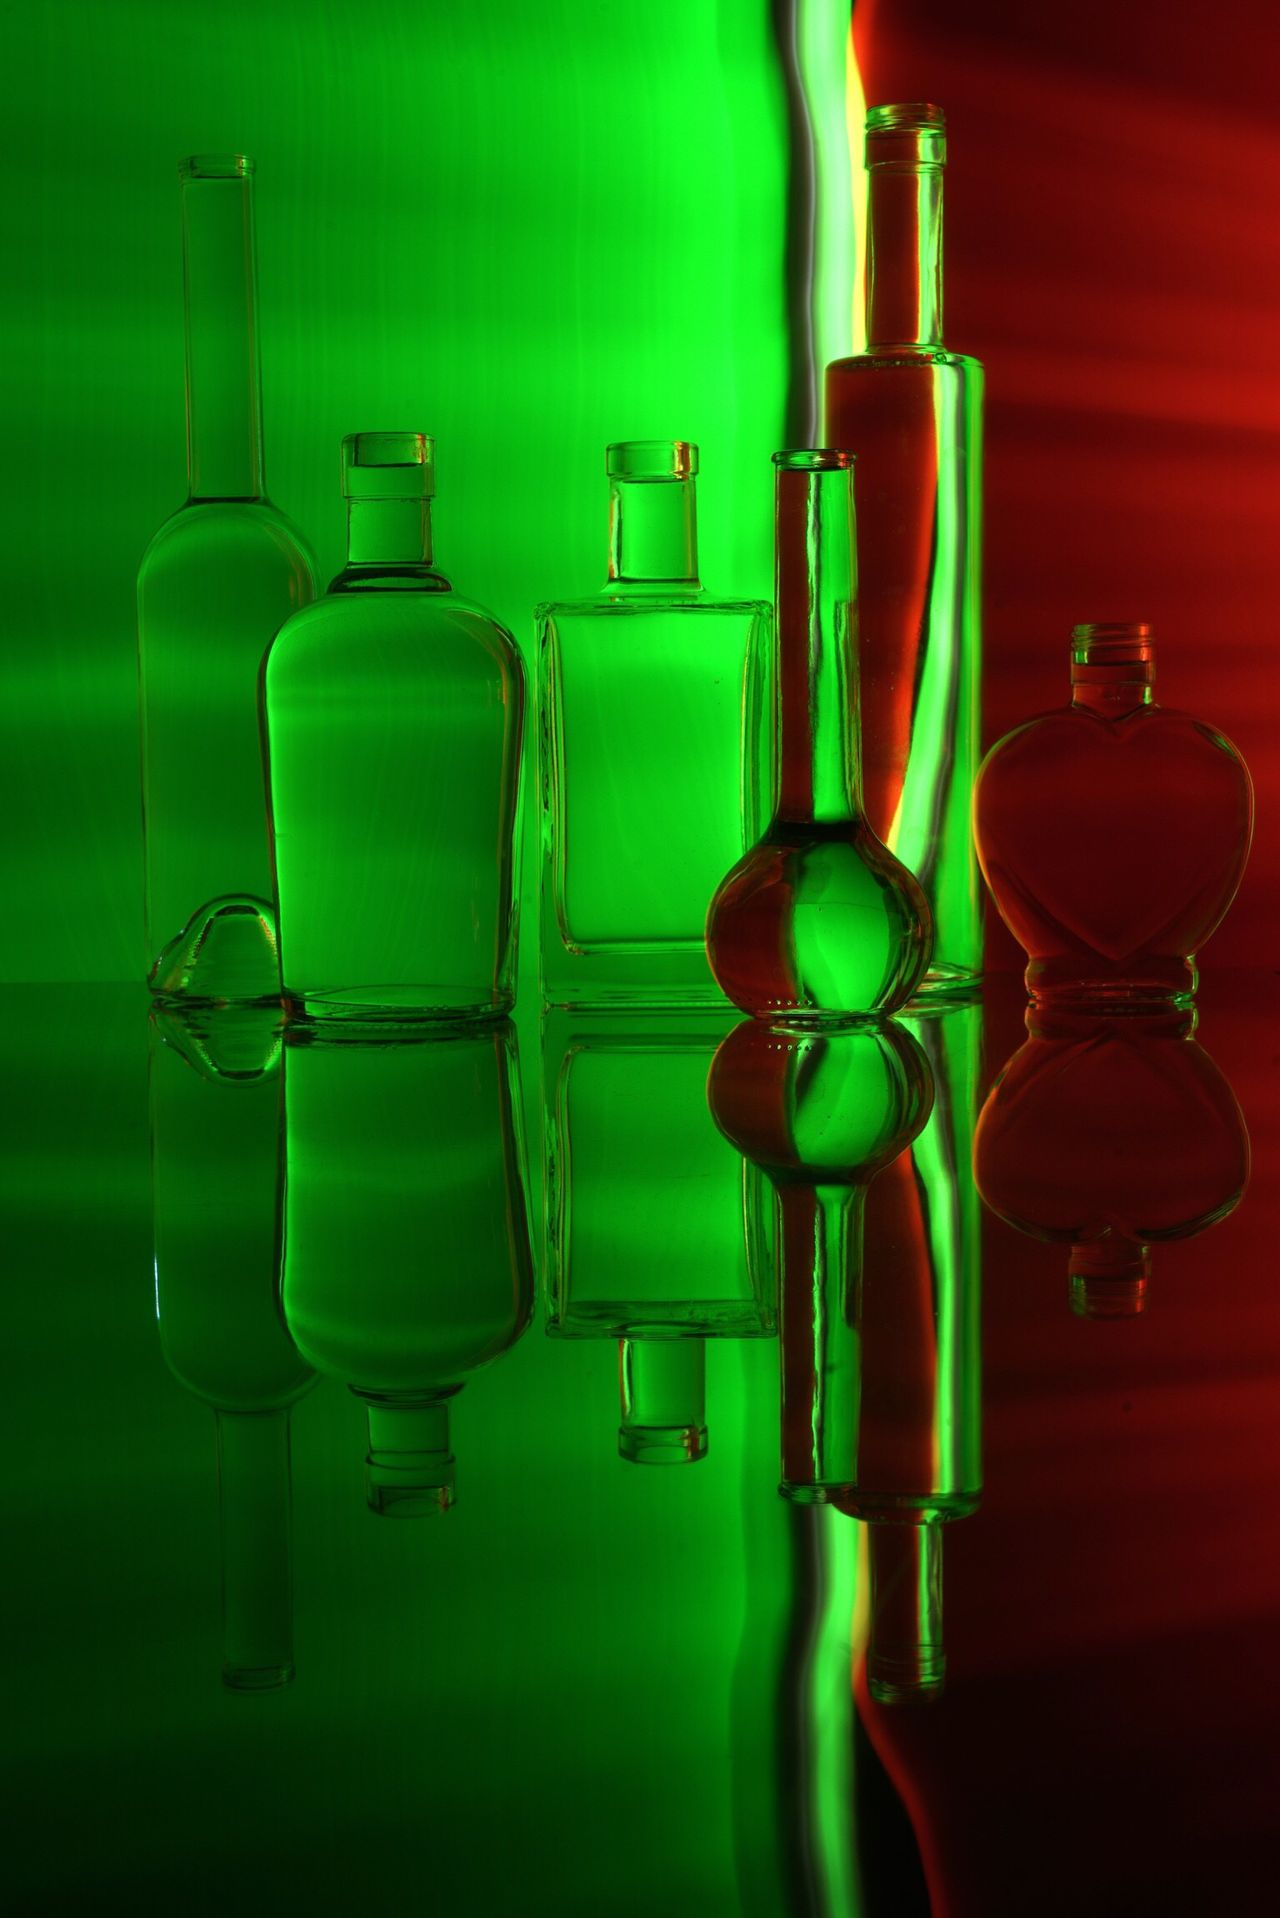 Green Color In A Row Bottle Empty No People Illuminated Close-up Variation Indoors  Day Art Abstract Creativity Bottles Collection Alcohol OpenEdit Tadaa Community Long Exposure Fine Art